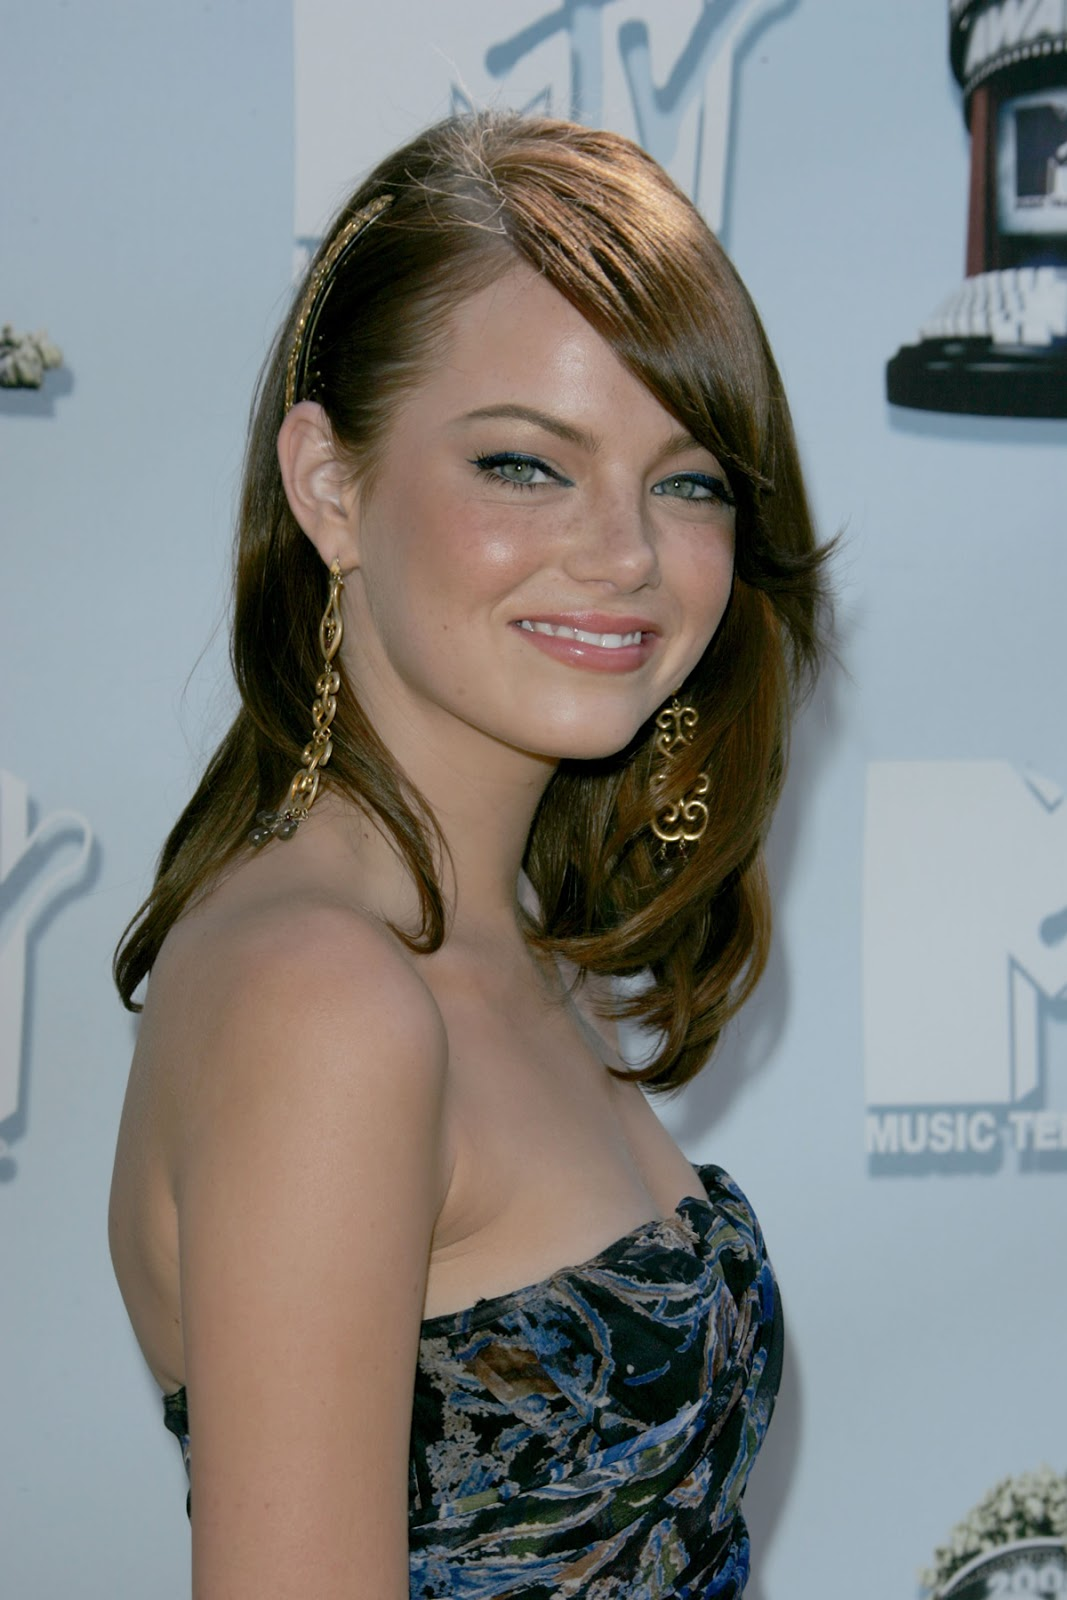 Emma Stone Belly Button Emma stone - bio - pictures